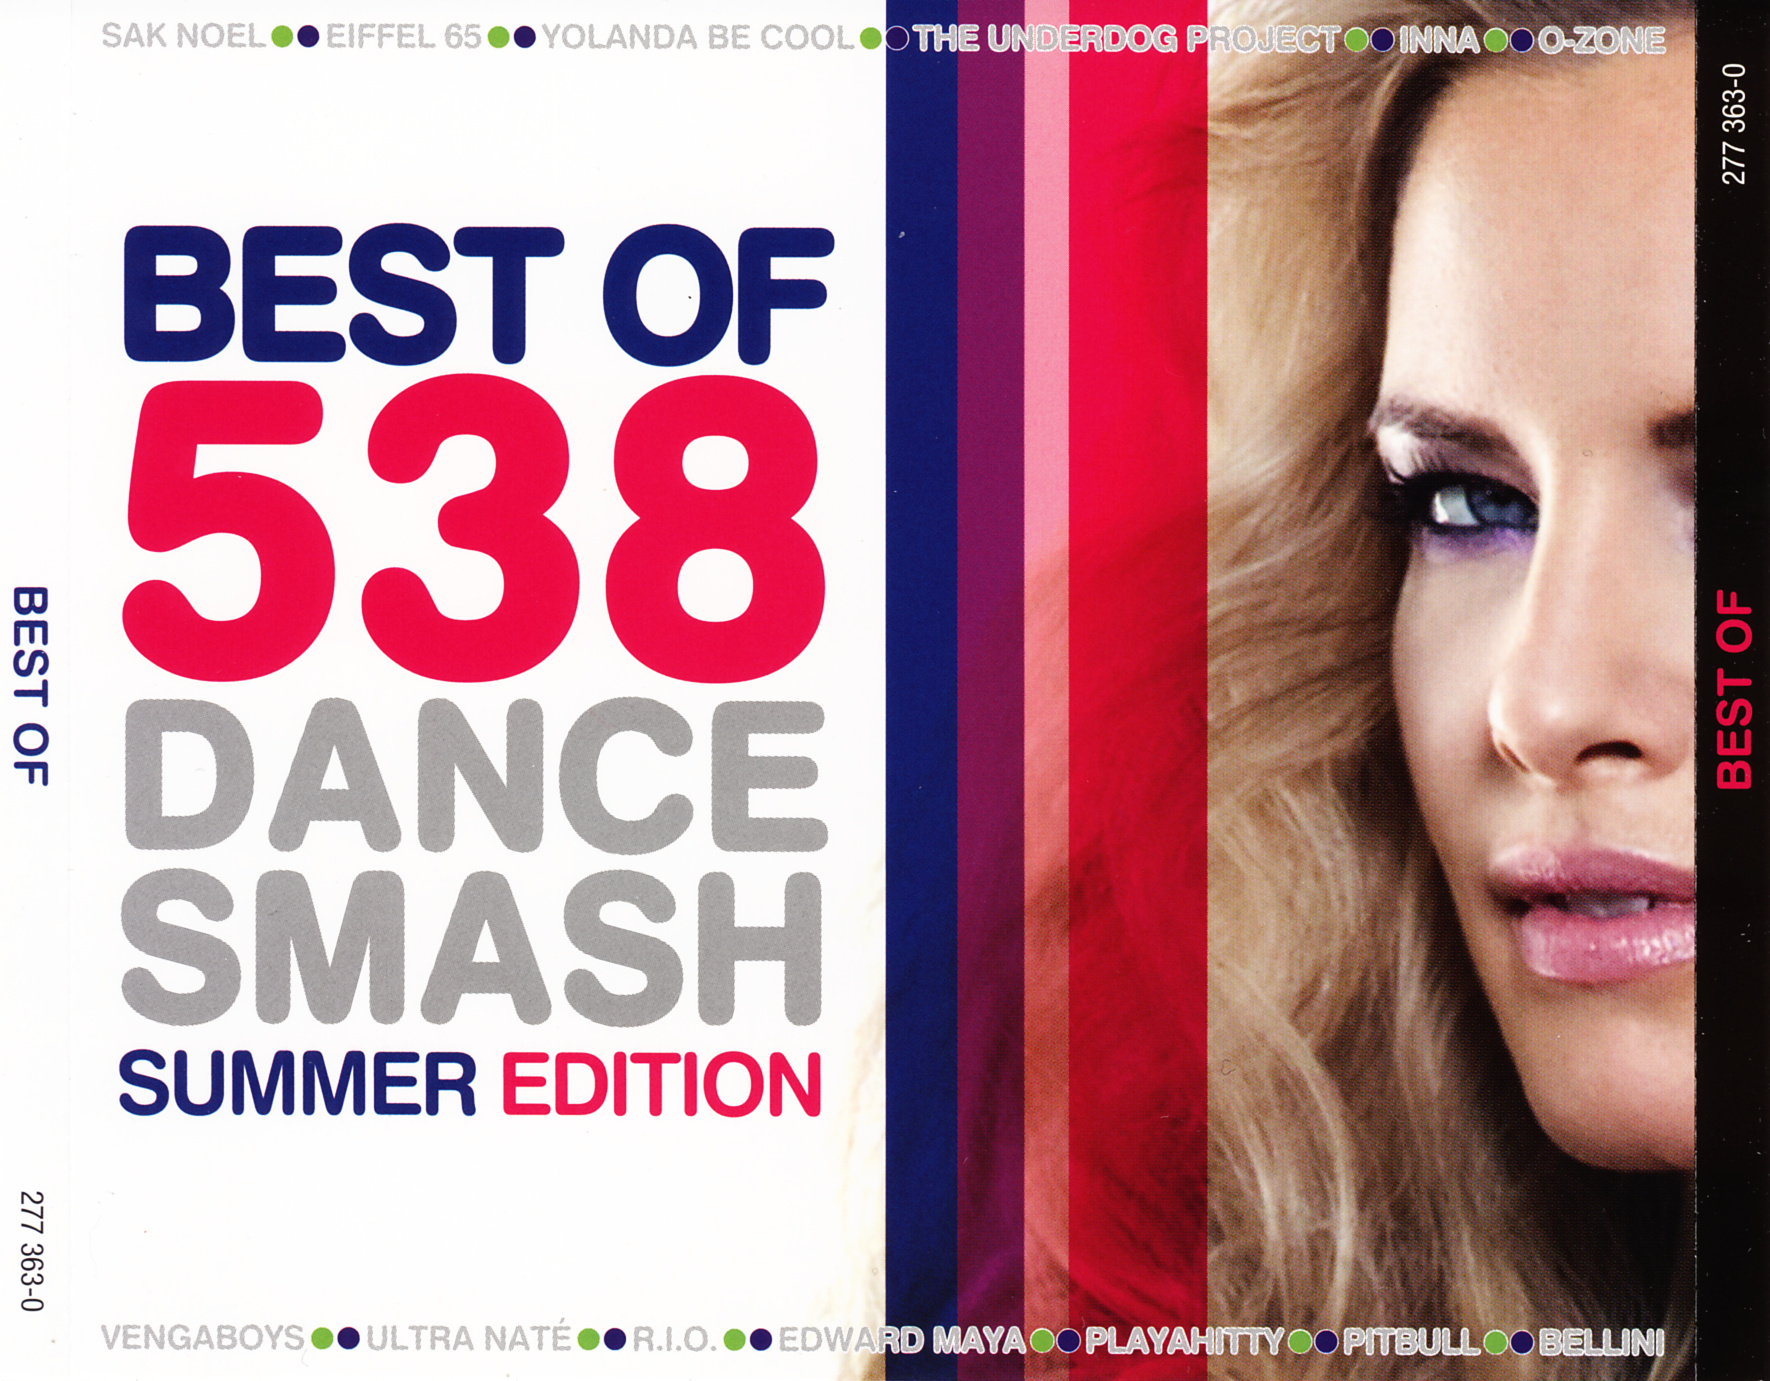 Best Of 538 Dance Smash - Summer Edition - Front (1-2)